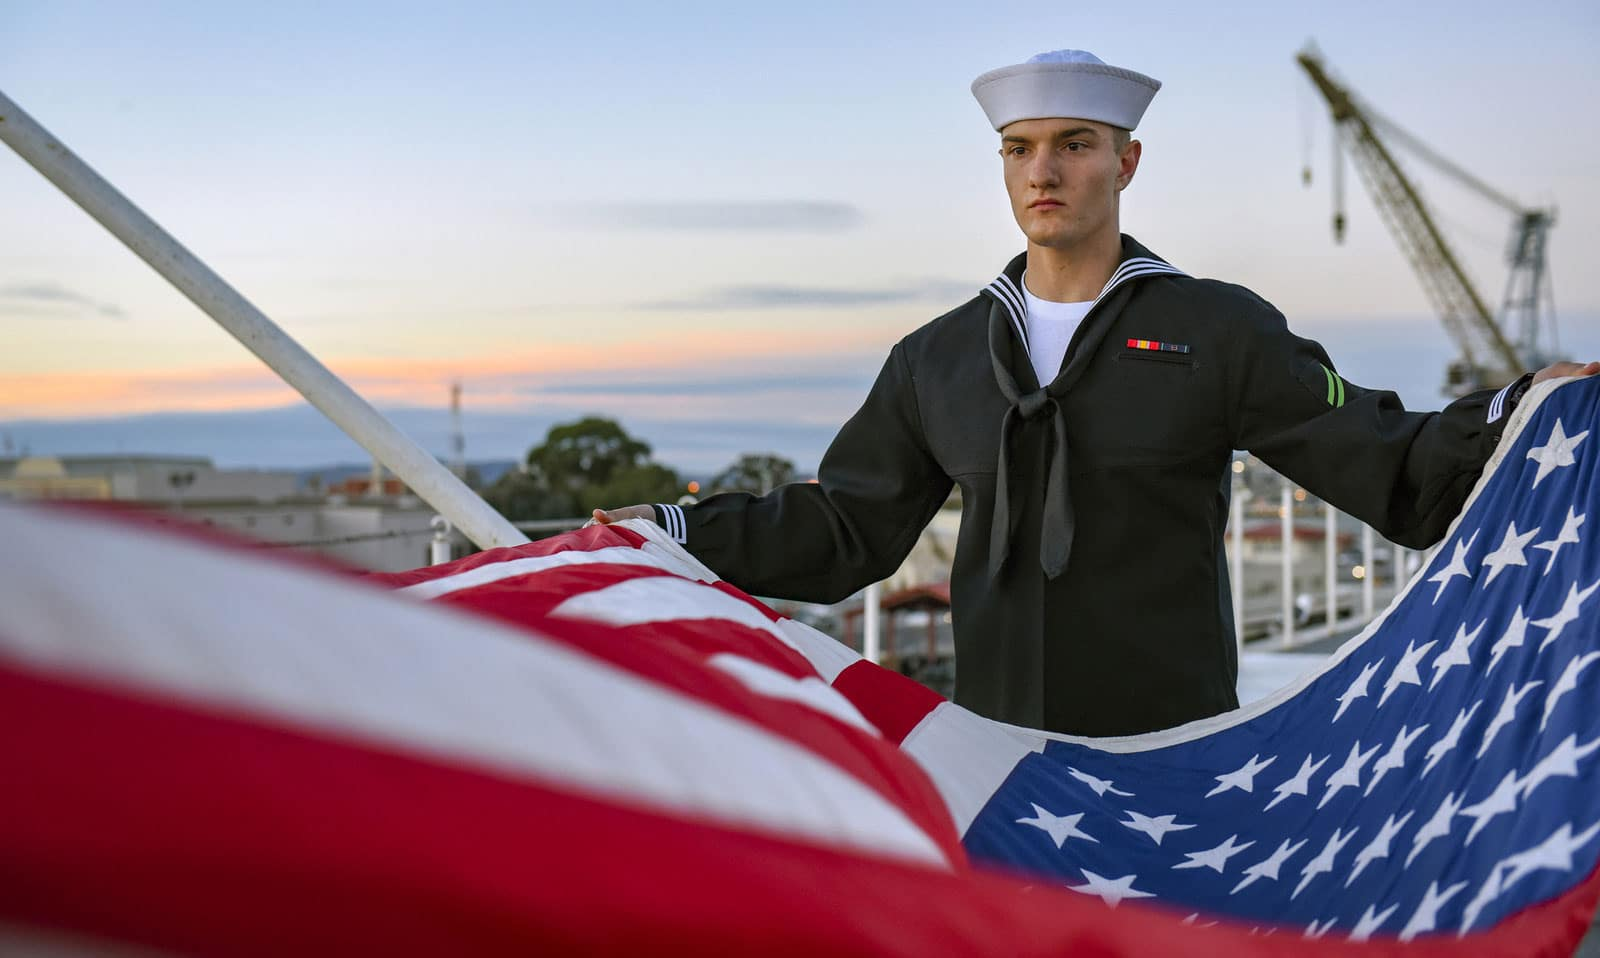 U.S. Navy Airman Apprentice Andrew Mackey performs evening colors aboard the aircraft carrier USS Carl Vinson (CVN 70). The Vinson Carrier Strike Group (CSG) is preparing to depart on a regularly-scheduled deployment to the Western Pacific where it will conduct bilateral exercises in the Indo-Asia-Pacific region.